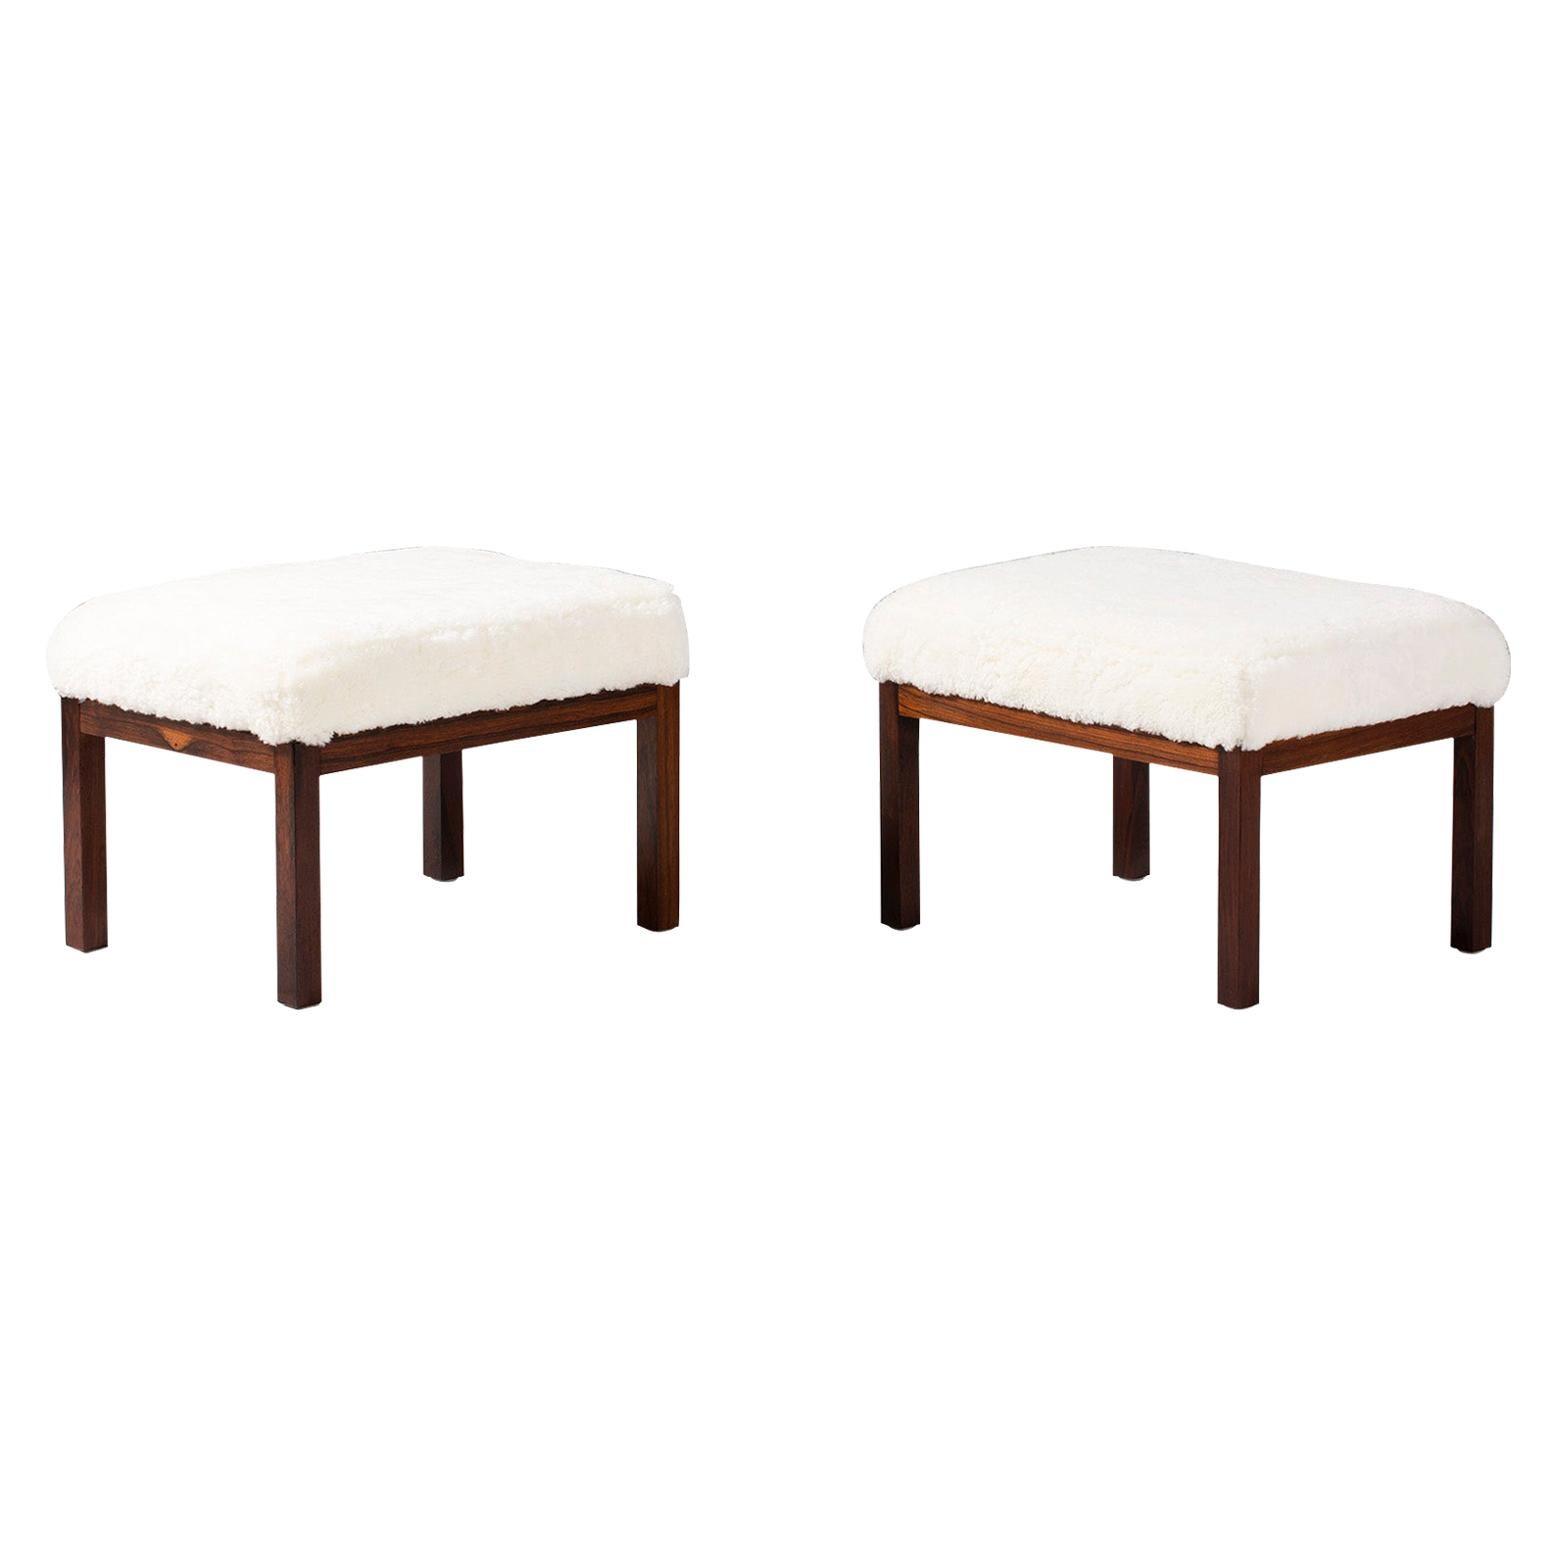 Pair of Rosewood and Sheepskin Vintage Ottomans, circa 1960s